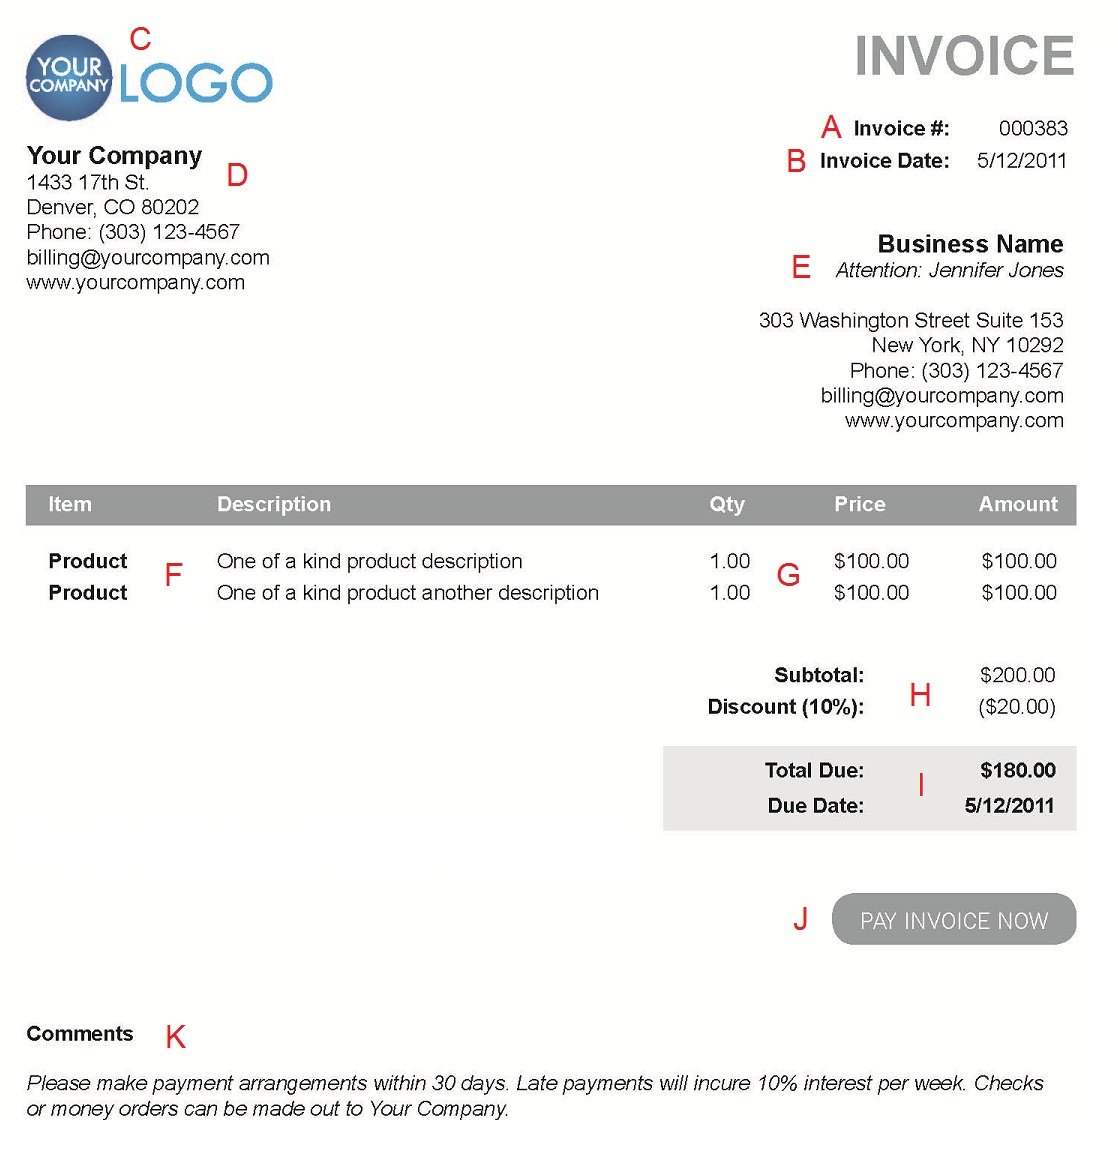 Offtheshelfus  Terrific The  Different Sections Of An Electronic Payment Invoice With Outstanding A  With Charming Cash Invoice Sample Also Recipient Created Tax Invoice Example In Addition How To Make Invoices In Word And What Is Invoice Discounting As Well As How To Find Invoice Price For New Car Additionally Factoring Of Invoices From Paysimplecom With Offtheshelfus  Outstanding The  Different Sections Of An Electronic Payment Invoice With Charming A  And Terrific Cash Invoice Sample Also Recipient Created Tax Invoice Example In Addition How To Make Invoices In Word From Paysimplecom